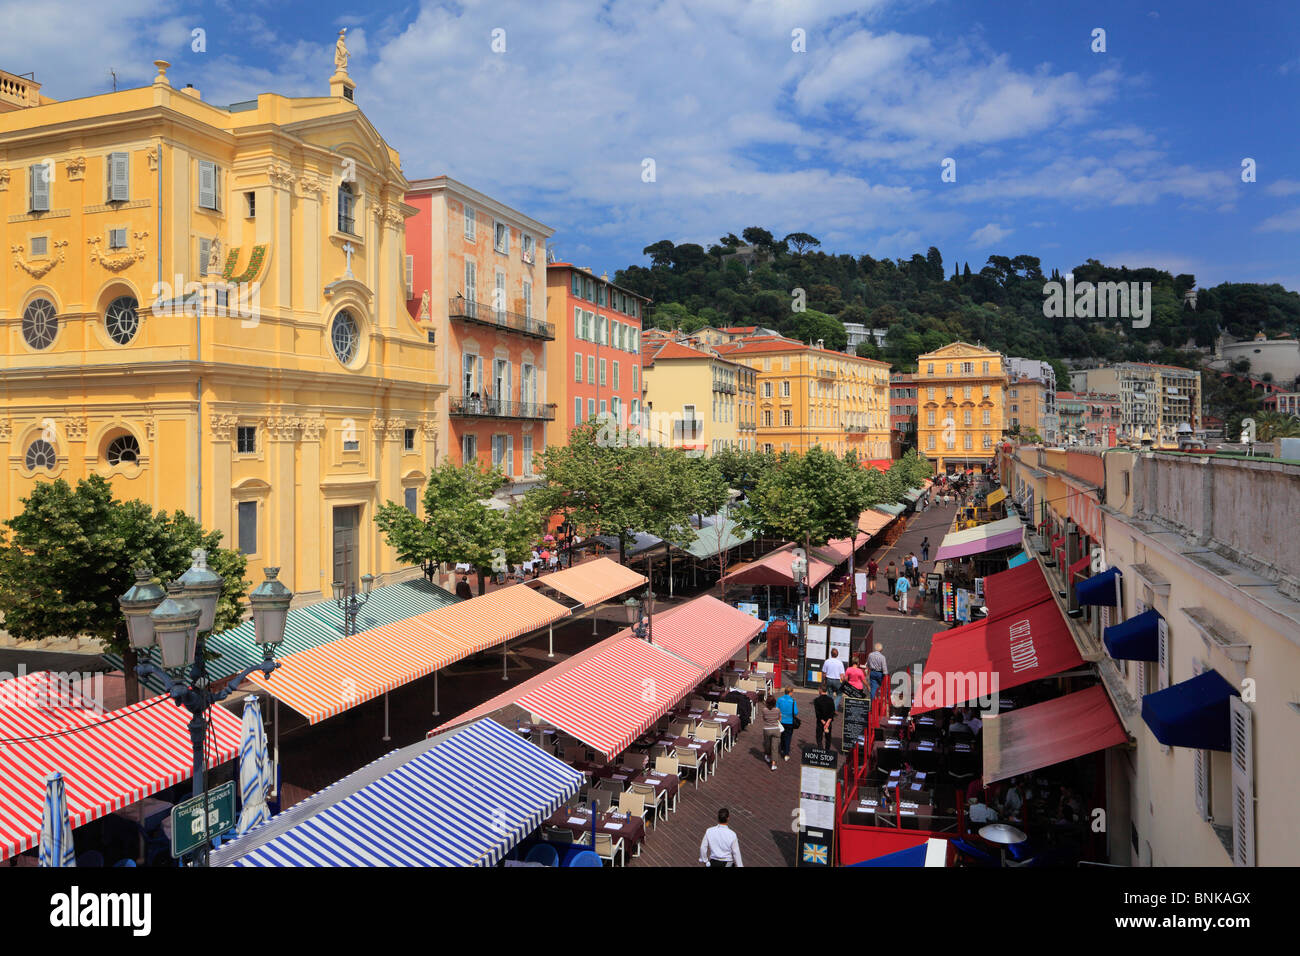 Flower market in old town, Vielle Ville, part of Nice on the French riviera Stock Photo